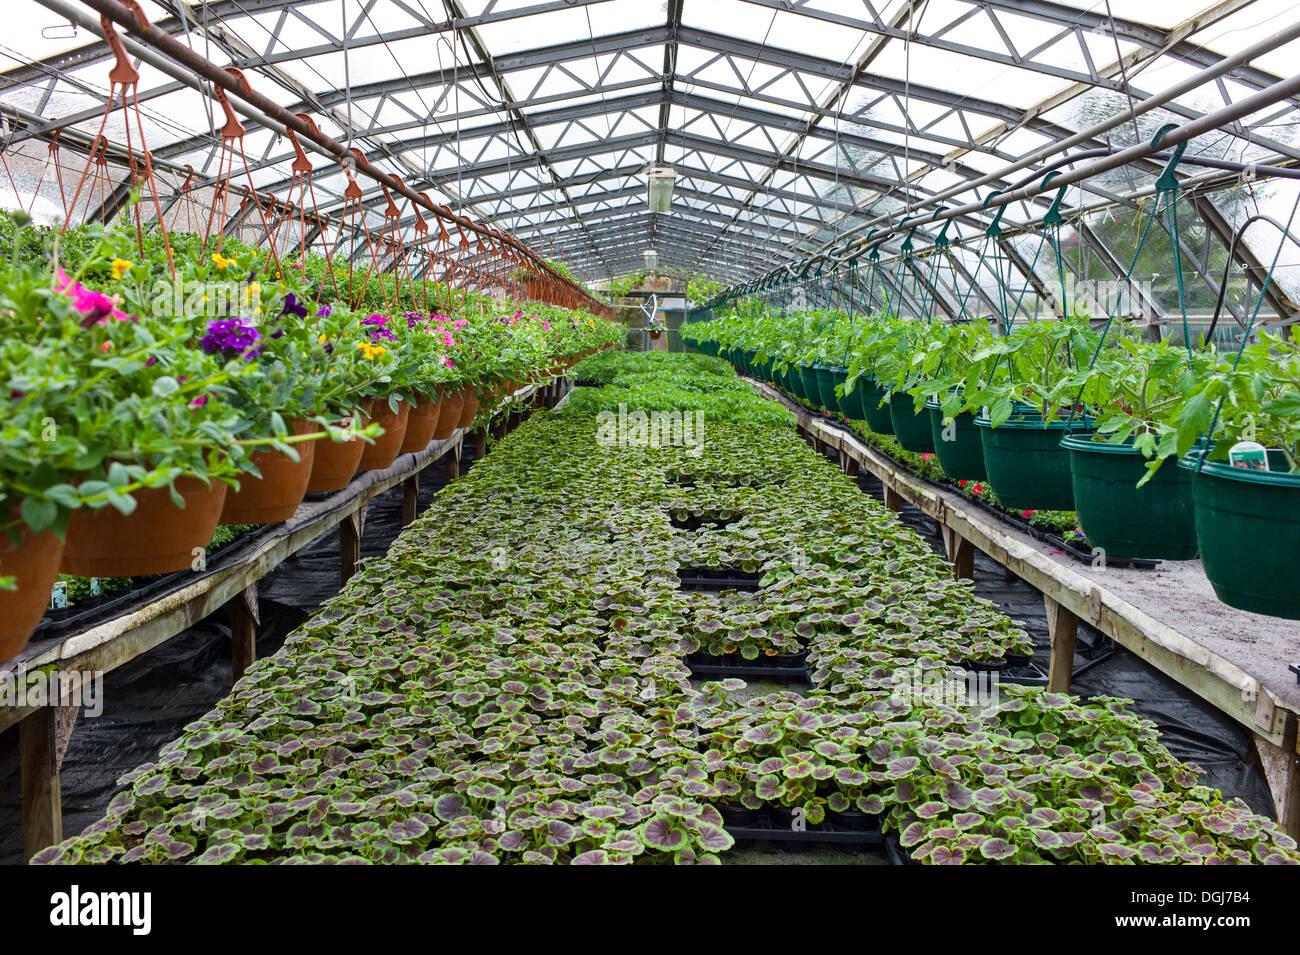 Inside a commercial nursery greenhouse growing geraniums and other plants. - Stock Image